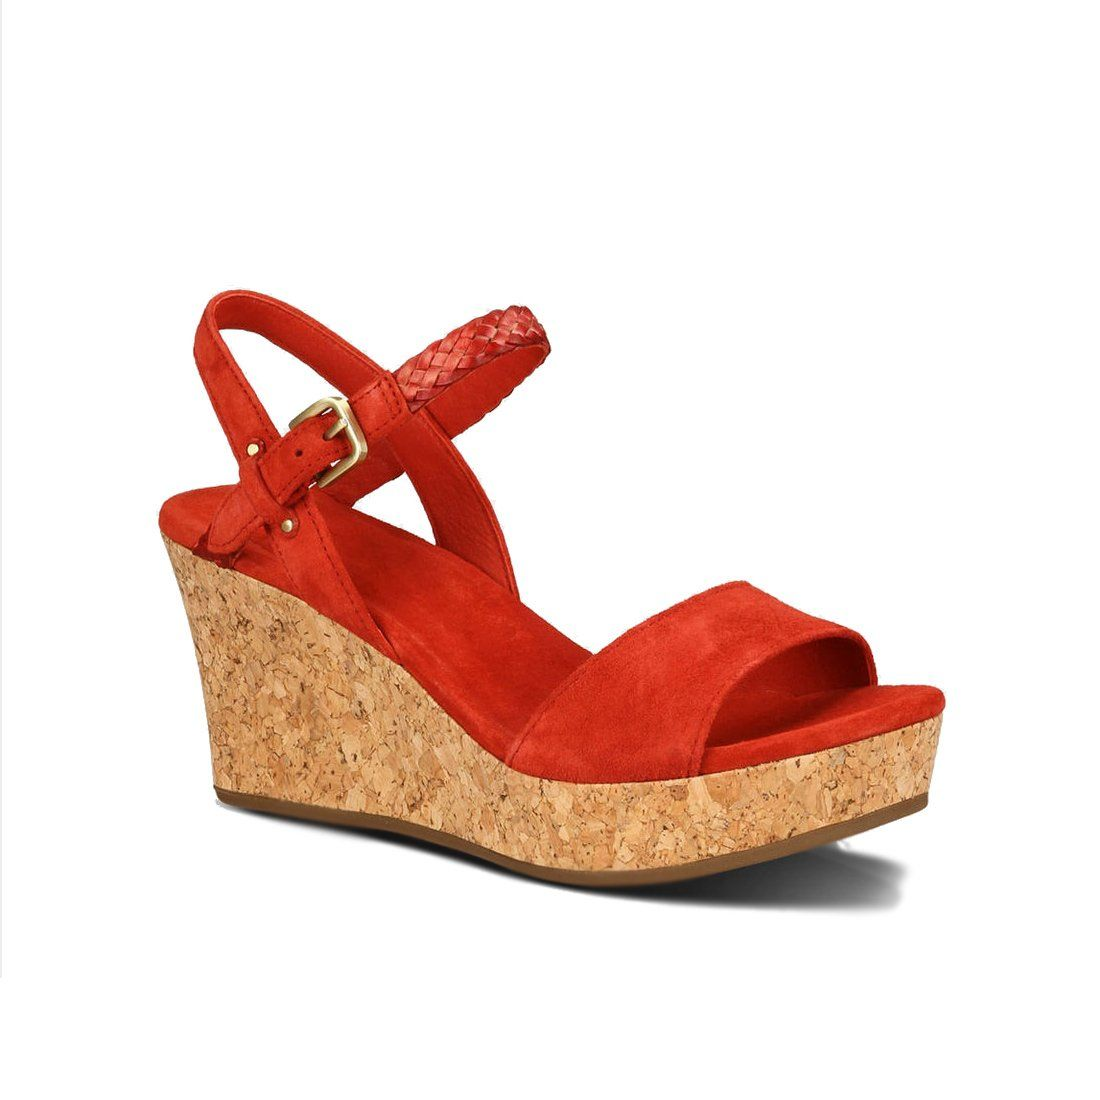 "New UGG Women's D'Alessio Leather Braid Wedge Sandal Tomato Soup Suede 7.5. Cheerfully chic, D'Alessio's butter-soft suede upper with hand antiquated leather braid adds an extra dose of optimism to everything from tried-and-true denim to retro-inspired circle skirts. Ultra-wearable and unbelievably lightweight, this 3"" sculpted cork wedge features an extra-cushioning, plush Poron footbed, so you can enjoy those extra hours of sunshine in ultimate UGG comfort."